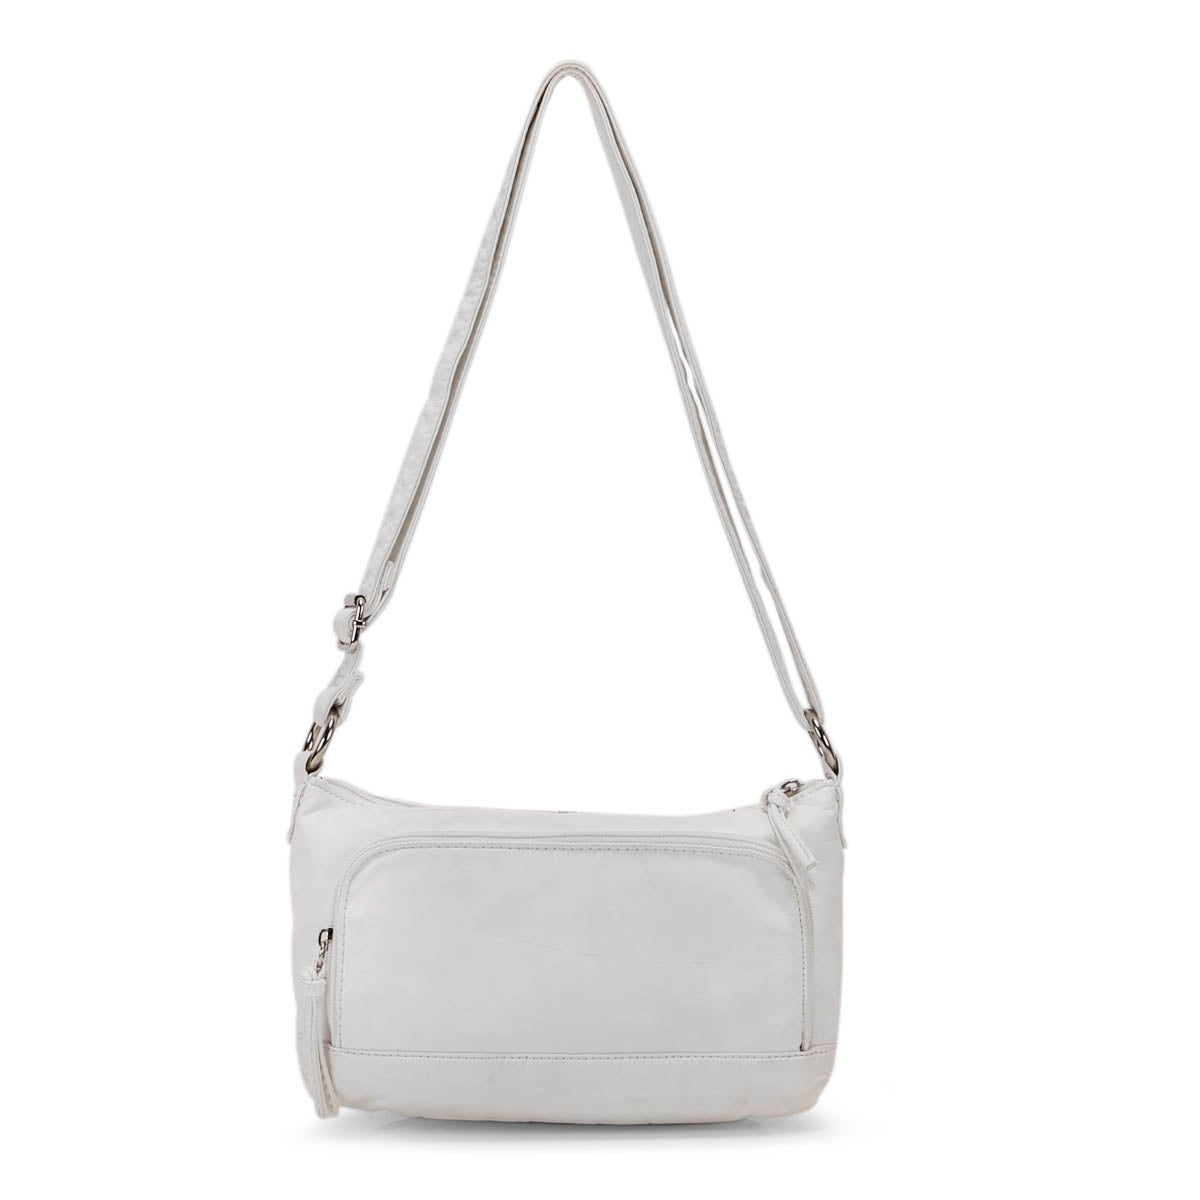 Lds white pearlized crossbody bag